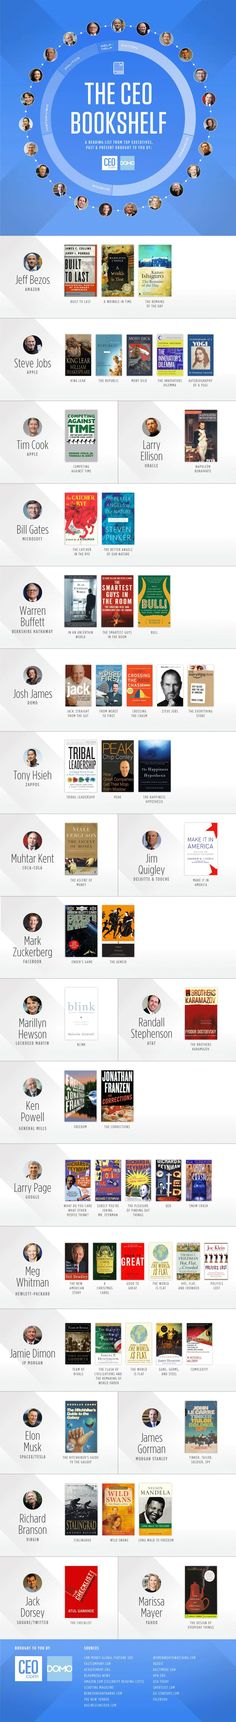 """The CEO Bookshelf"" is the infographic created by Domo and CEO.com. It lists books that influenced 22 most influential CEOs in the world, past and present.…"